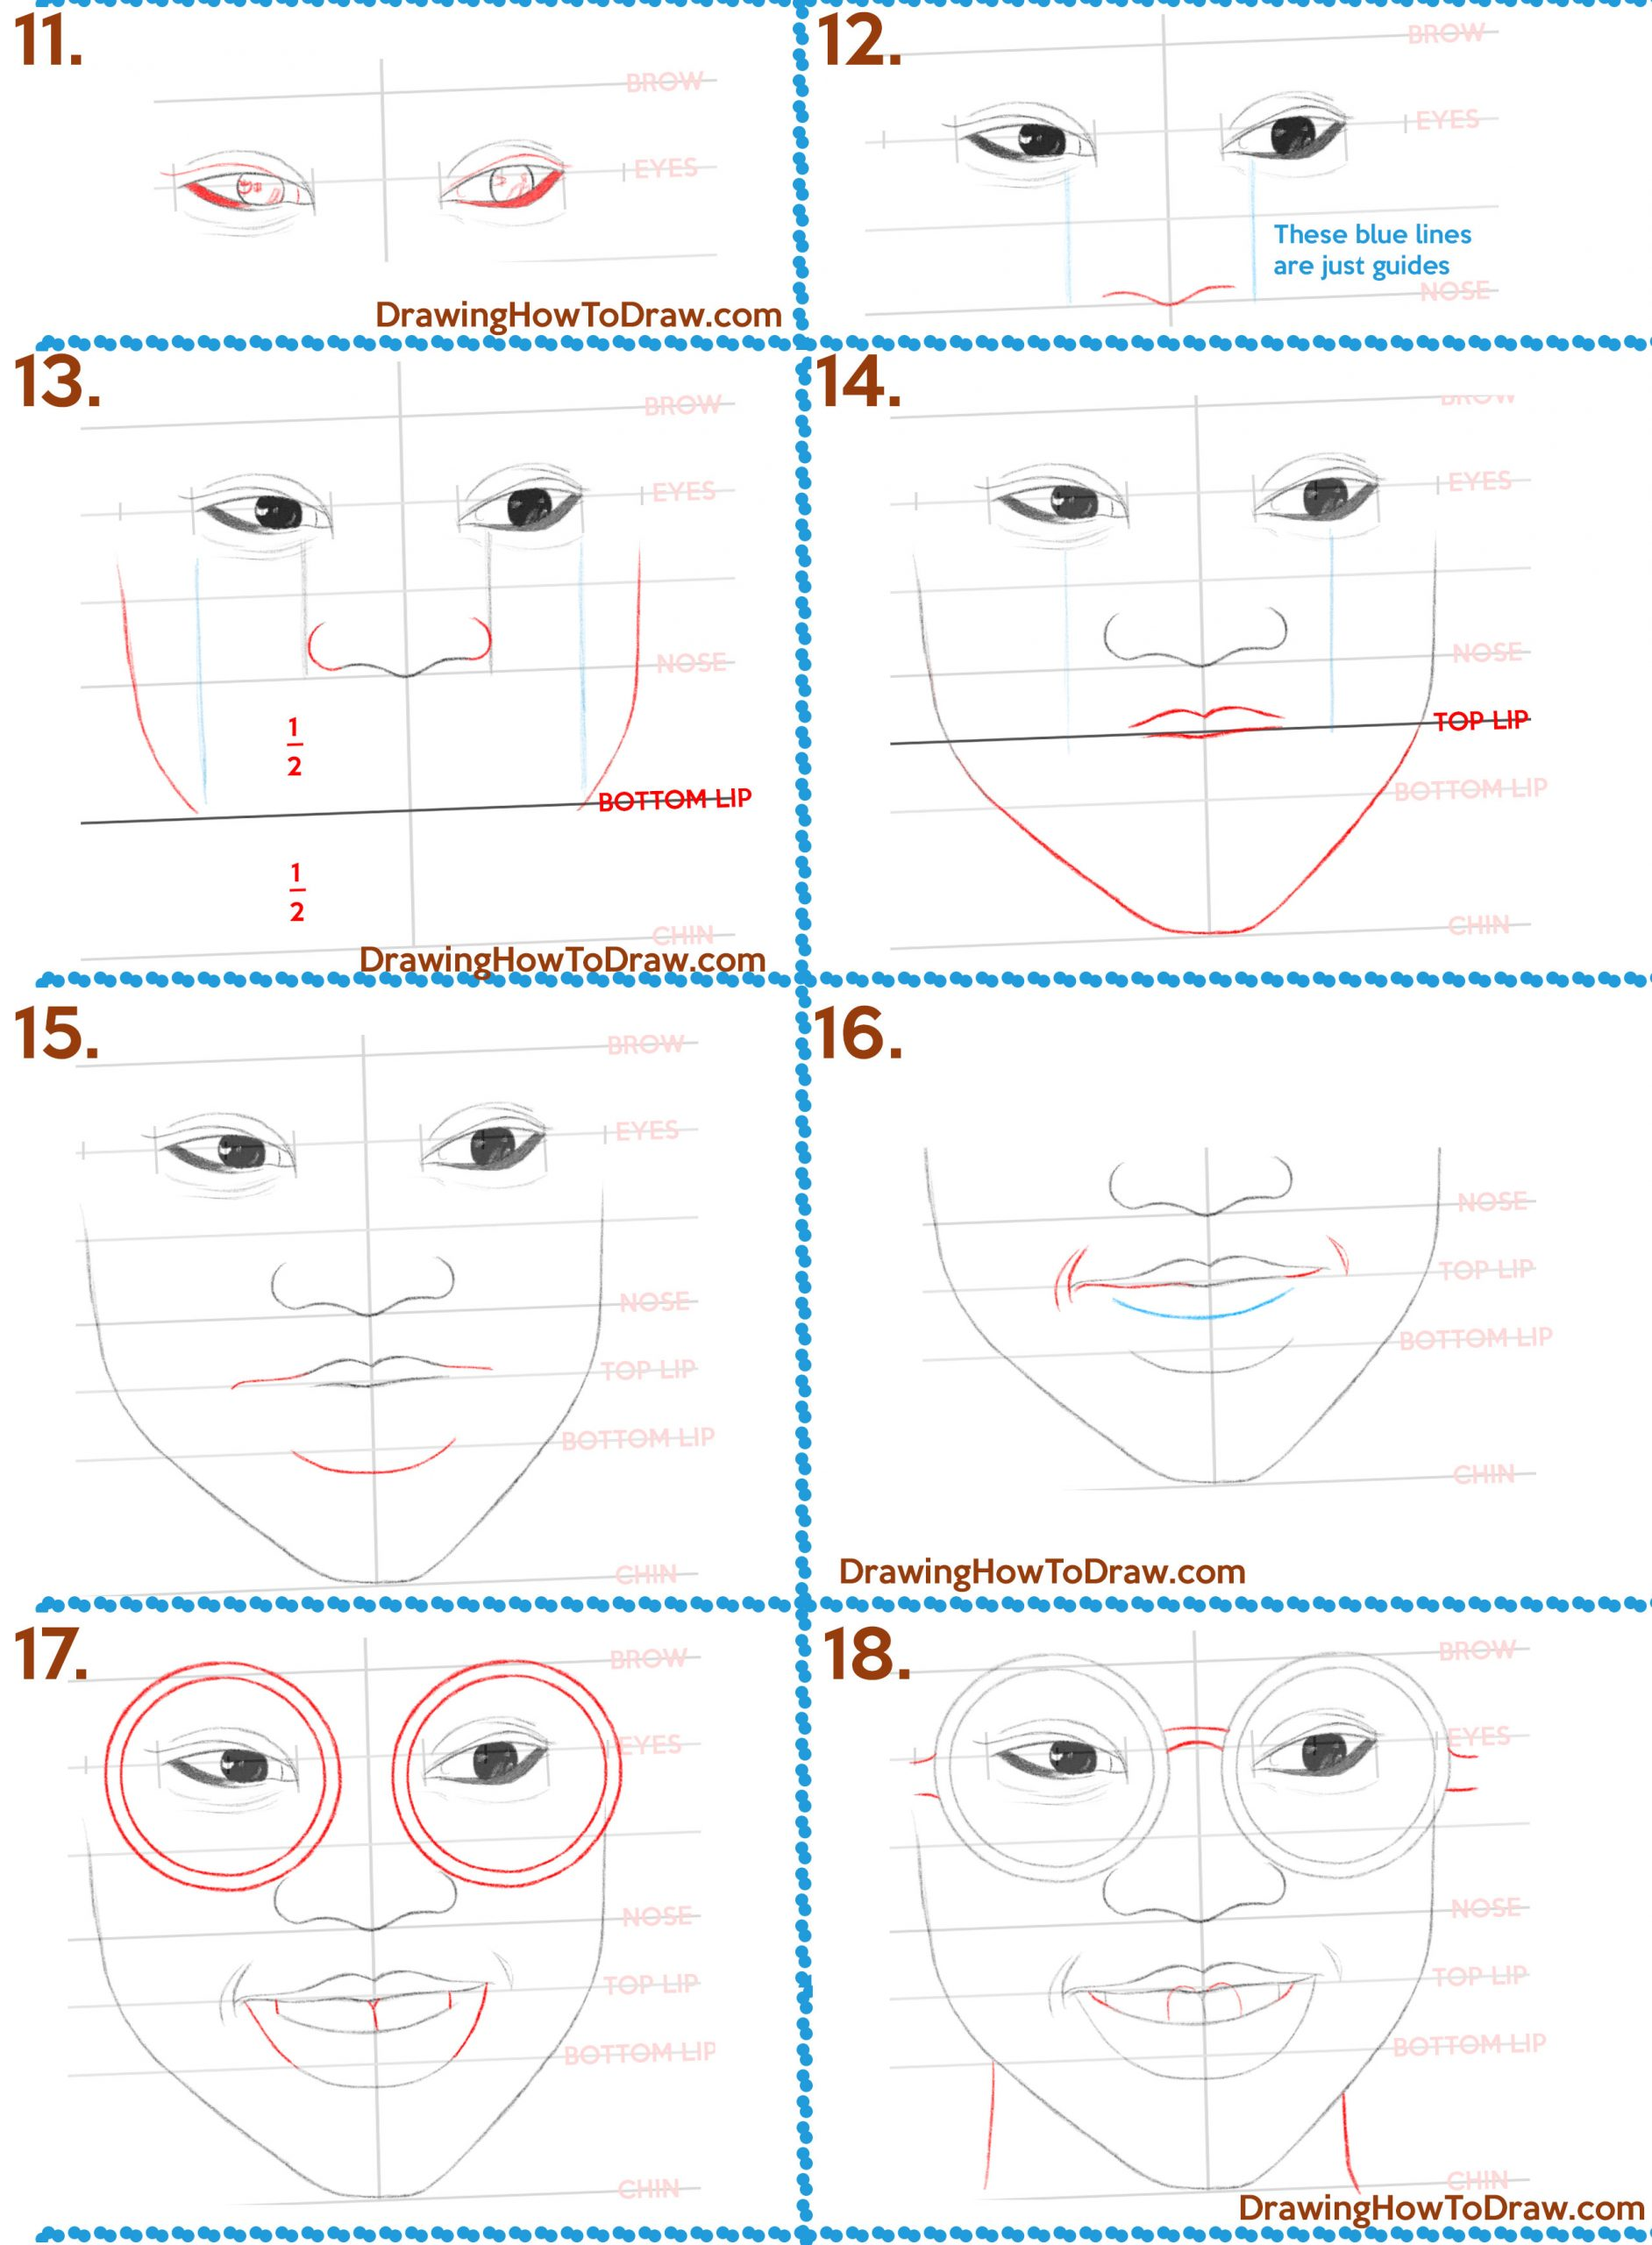 how to draw a beautiful black woman or girl's face easy steps